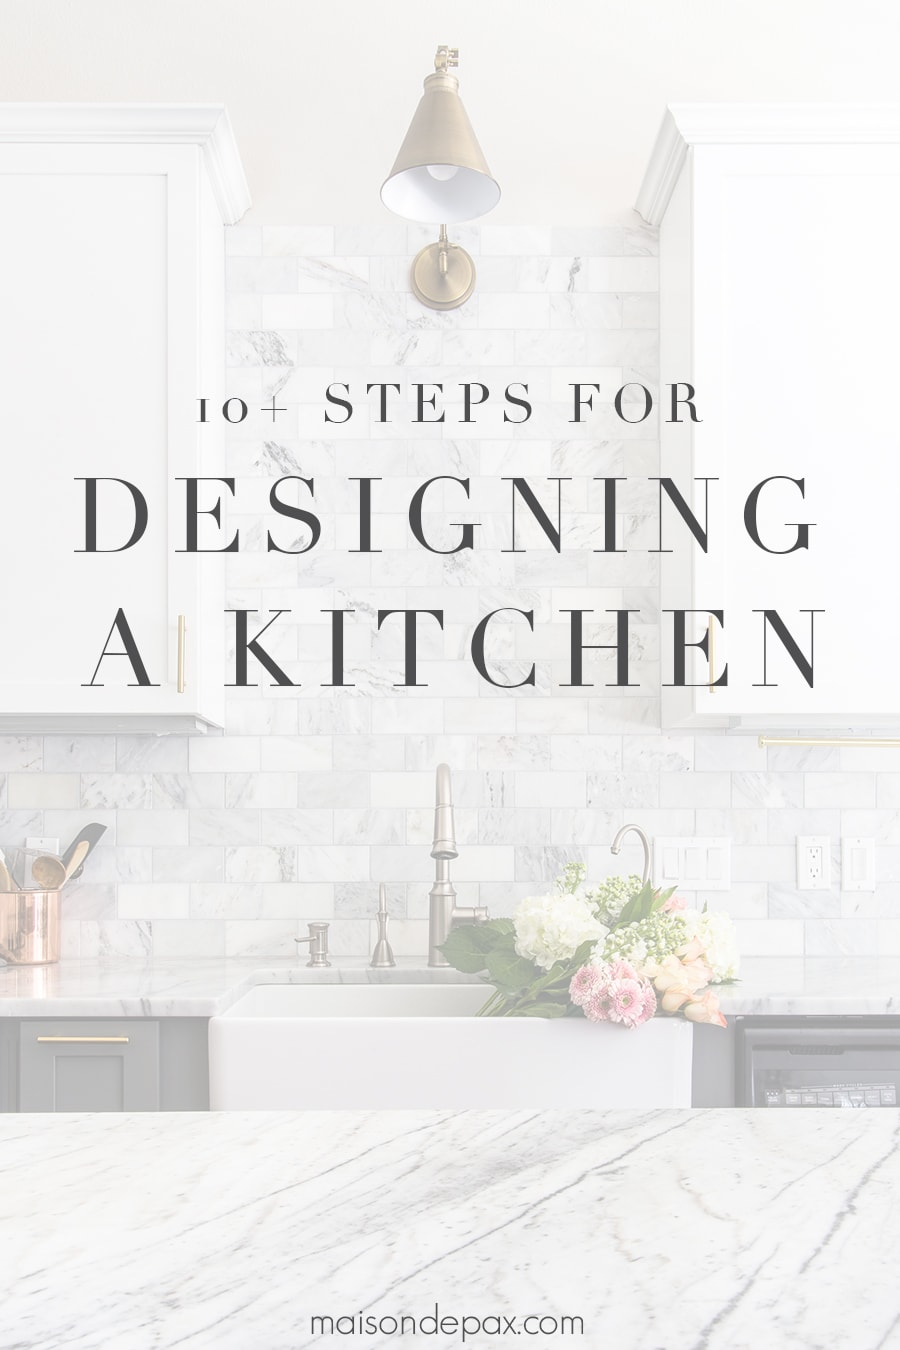 beautiful kitchen with text overlay: 10 steps for designing a kitchen- Maison de Pax